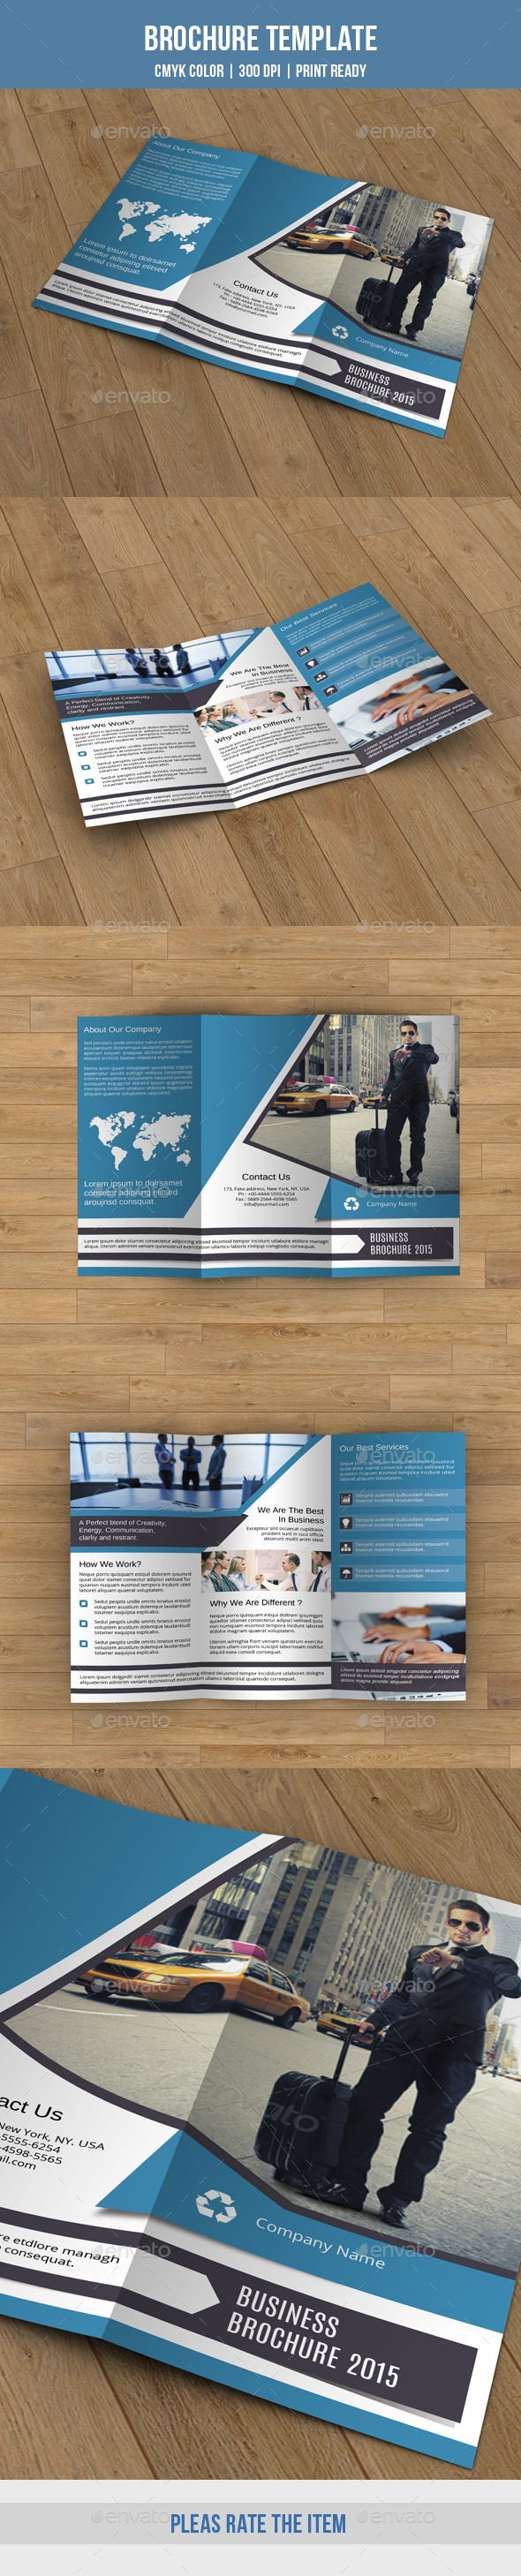 GraphicRiver Trifold Business Brochure-V202 9796768